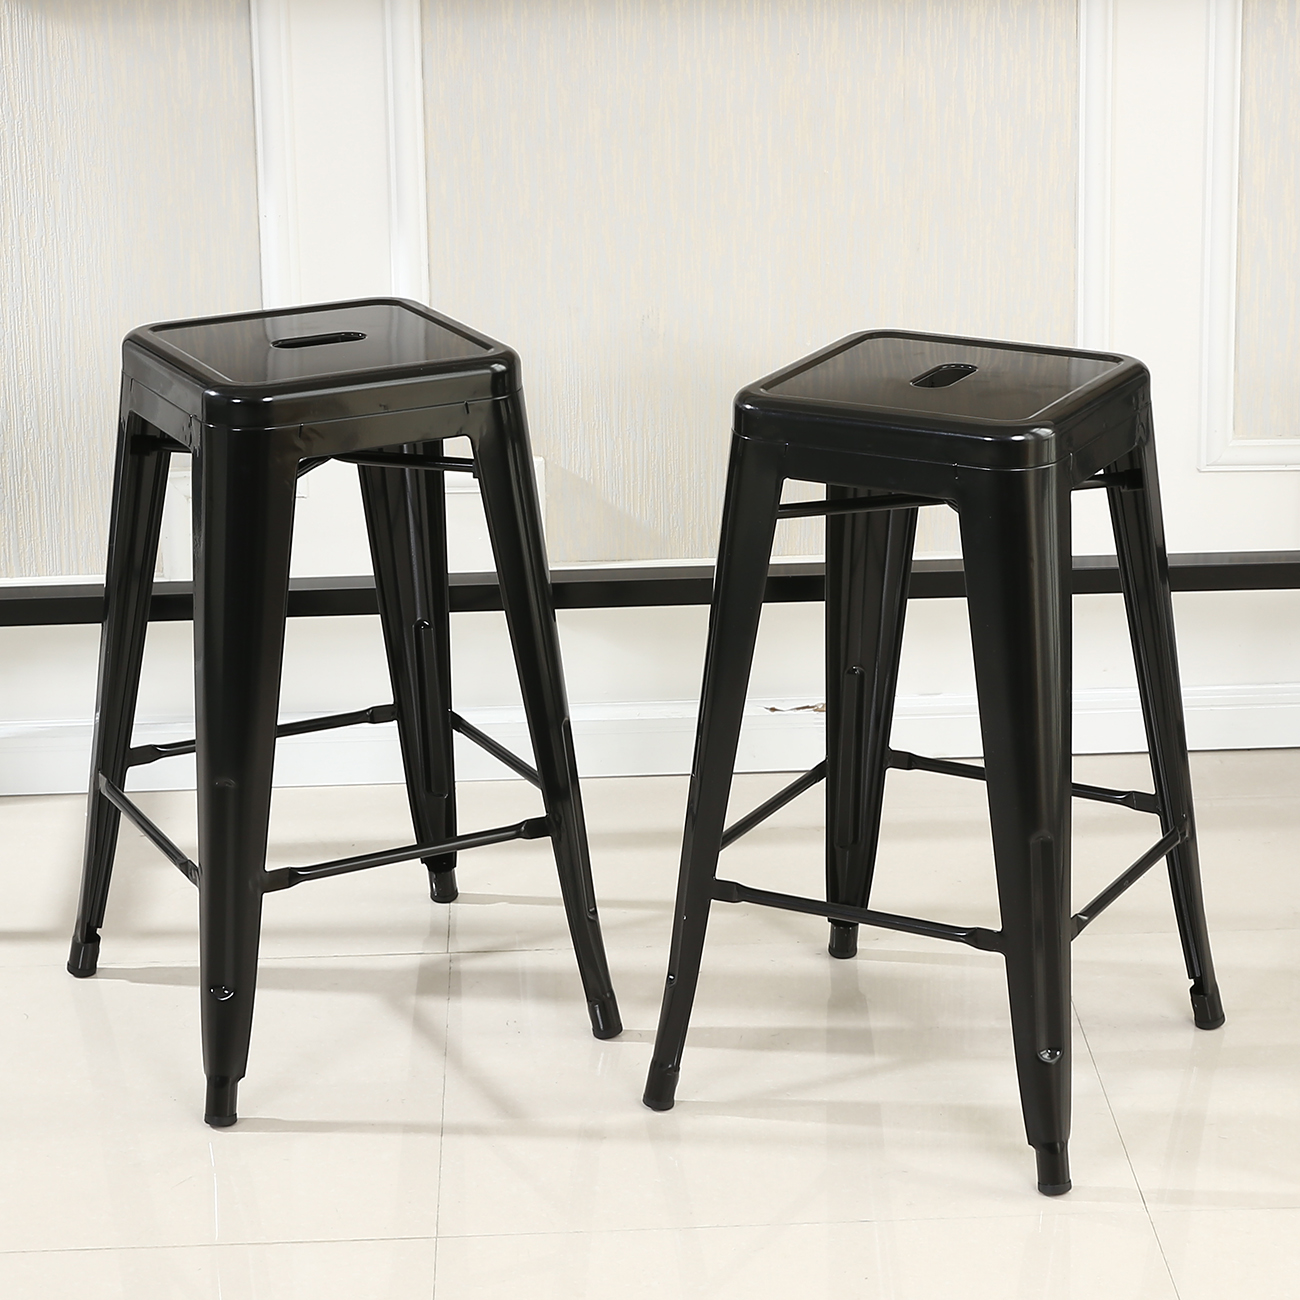 Bar Chairs Set Of 6 Metal Steel Bar Stools Vintage Antique Style